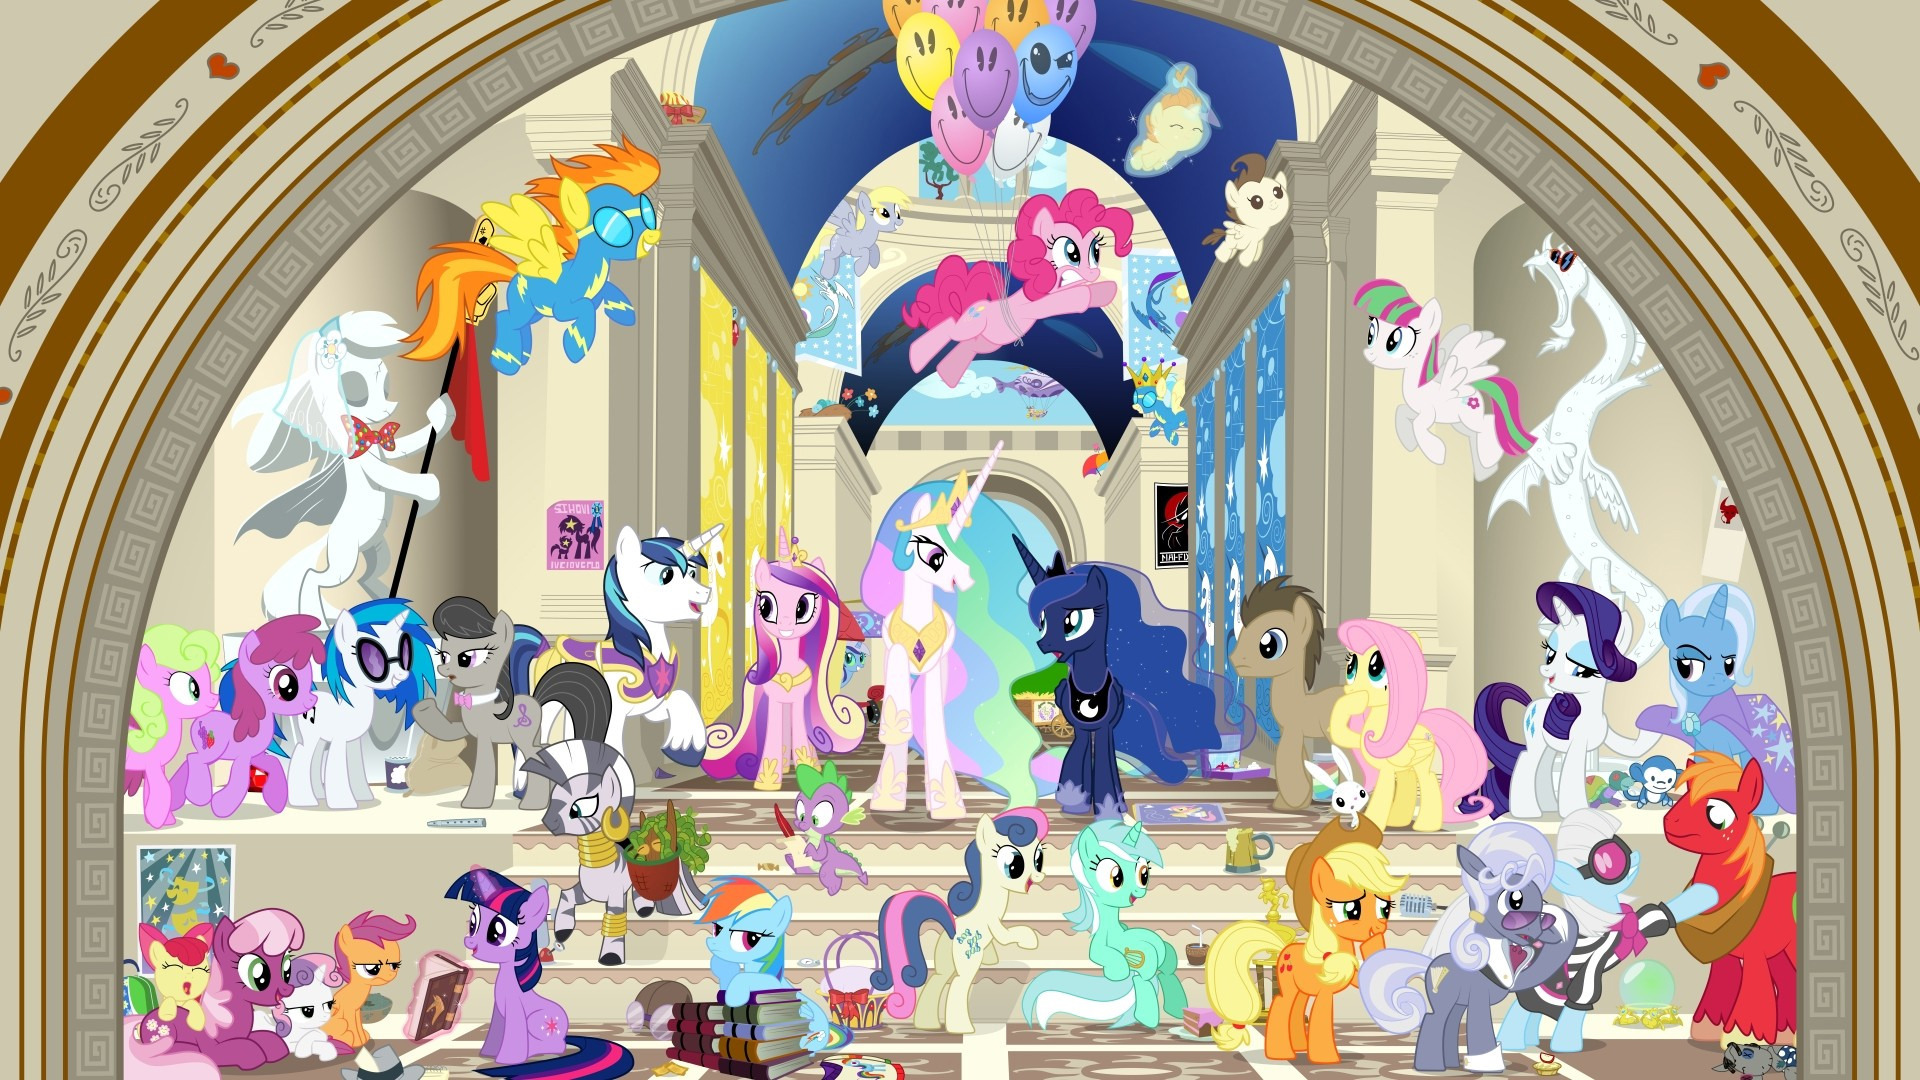 Free Download Pony Wallpapers My Little Pony Friendship Is Magic